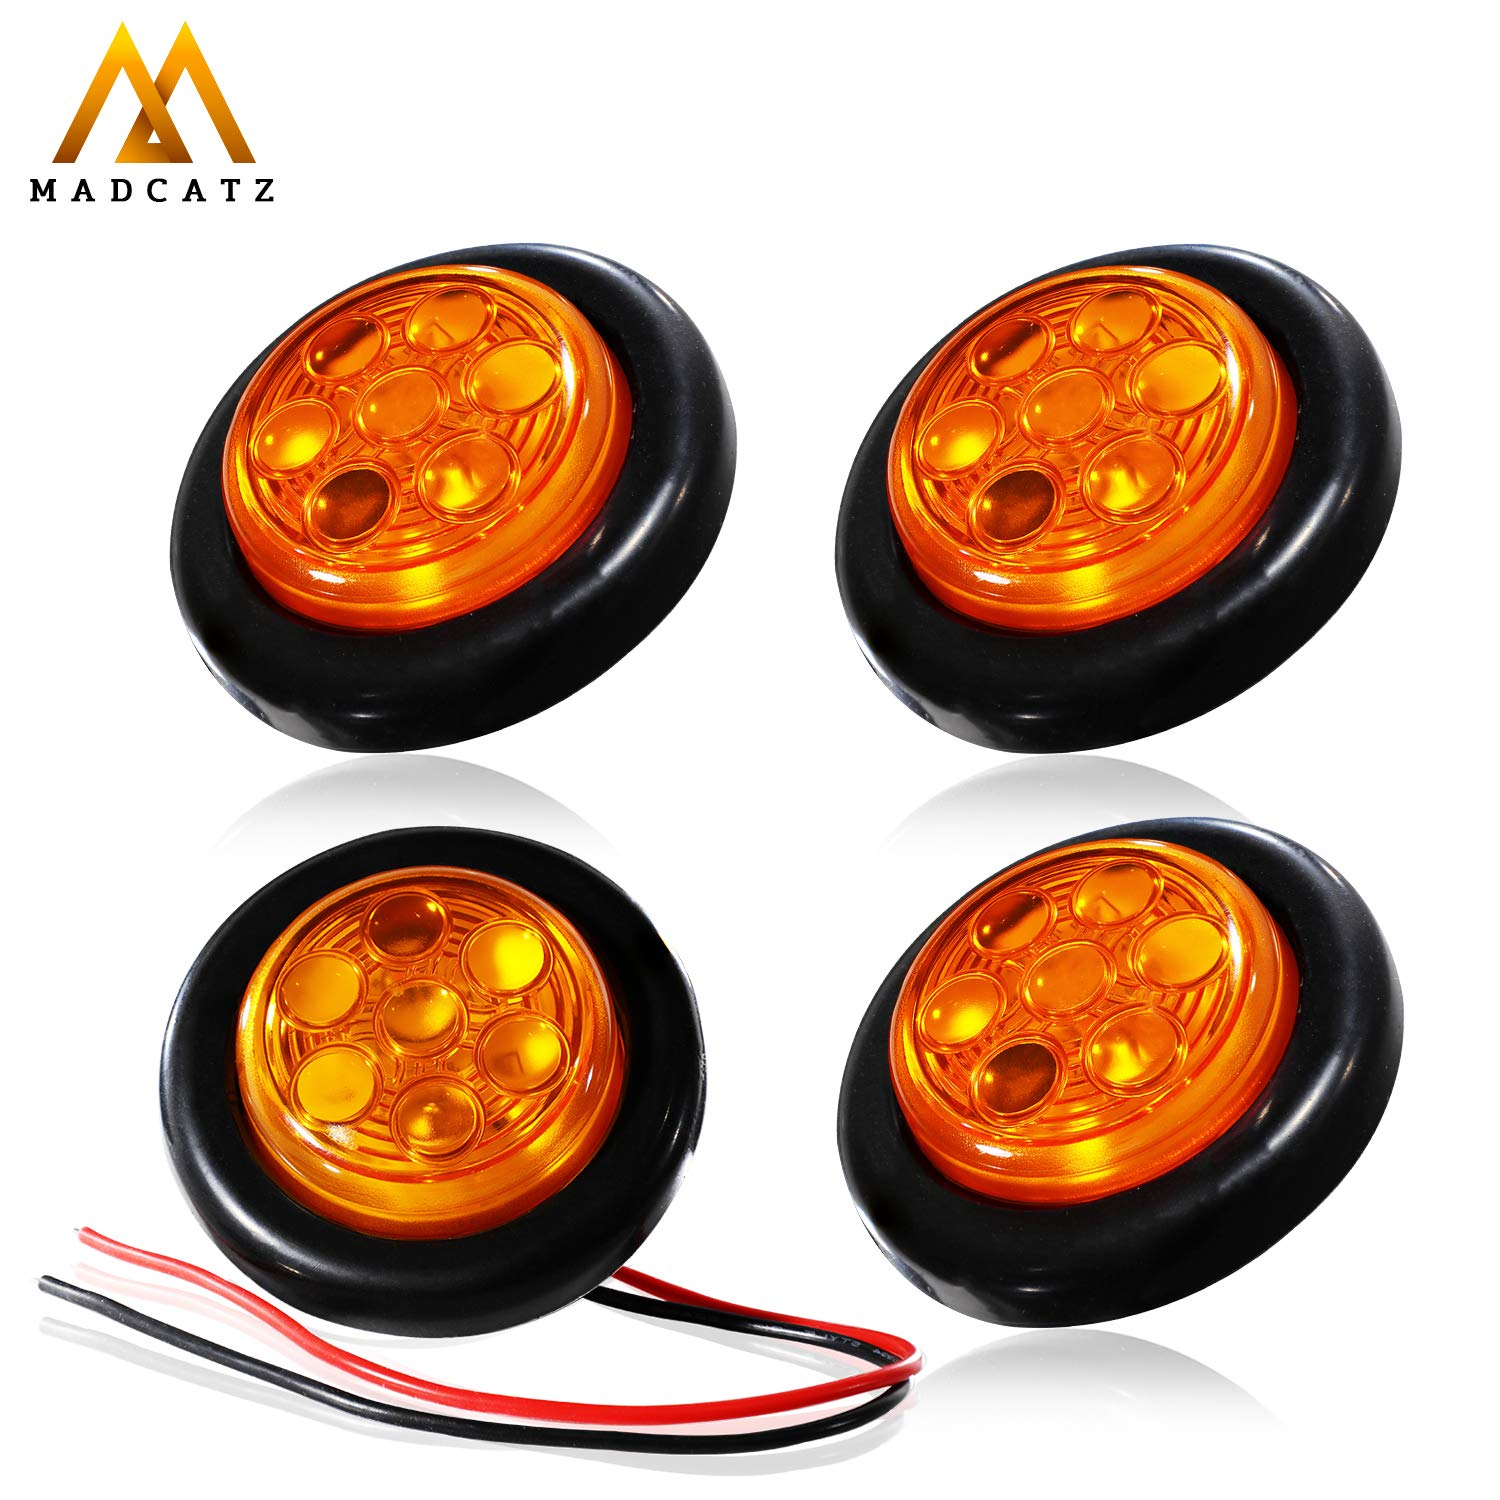 MadCatz Pack of 4 2 Inch Amber LED Round Side Marker Lights 7 Diodes Sealed Flush Mount 2835 SMD Super Bright Trailer Bus Truck RV Cabin Pickup Van Lorry Waterproof 24V DC with Rubber Grommet O724